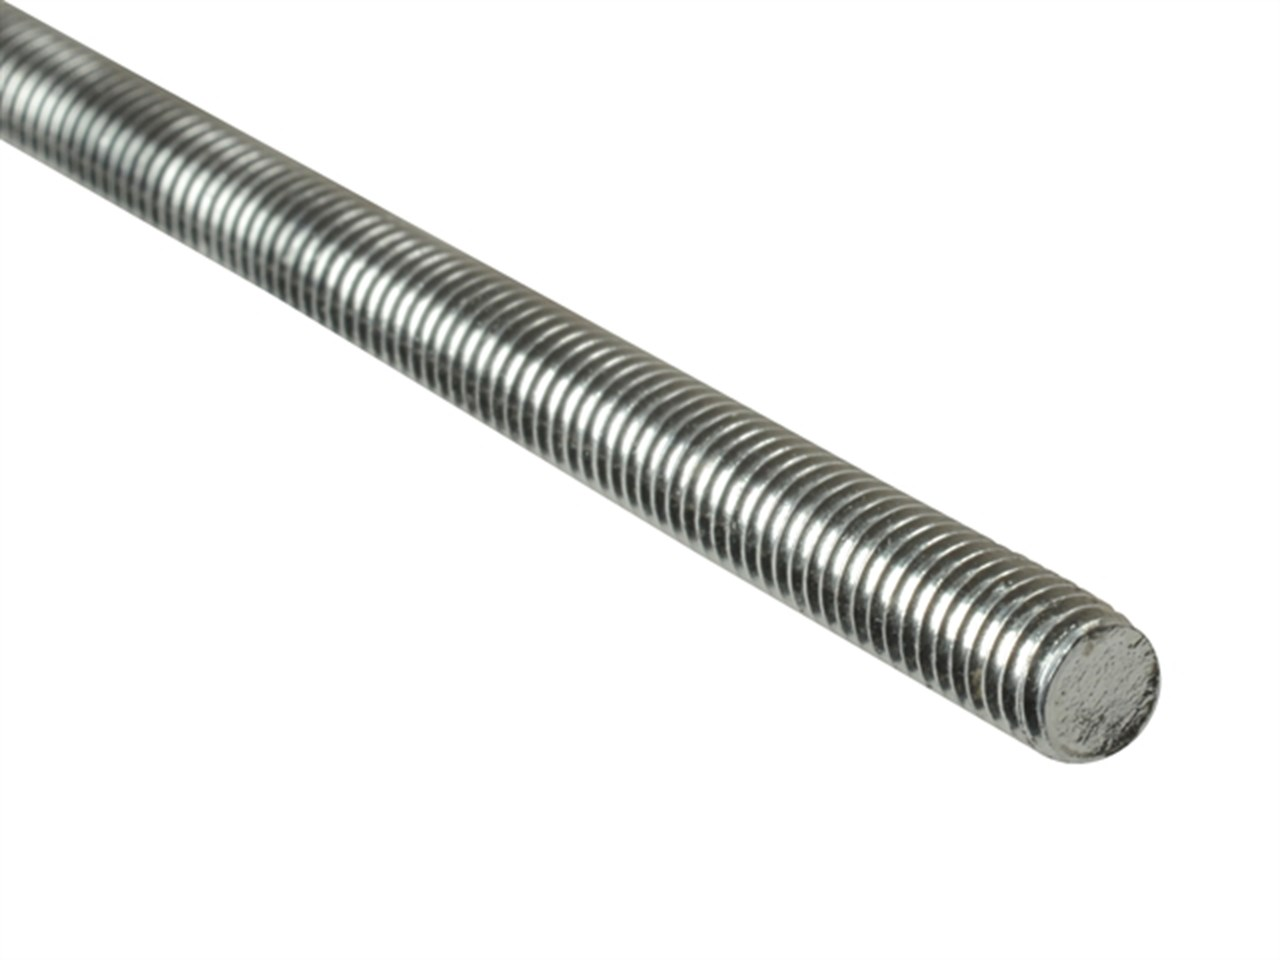 Forgefix ROD8SS Threaded Rod Stainless Steel M8 x 1m Box 1